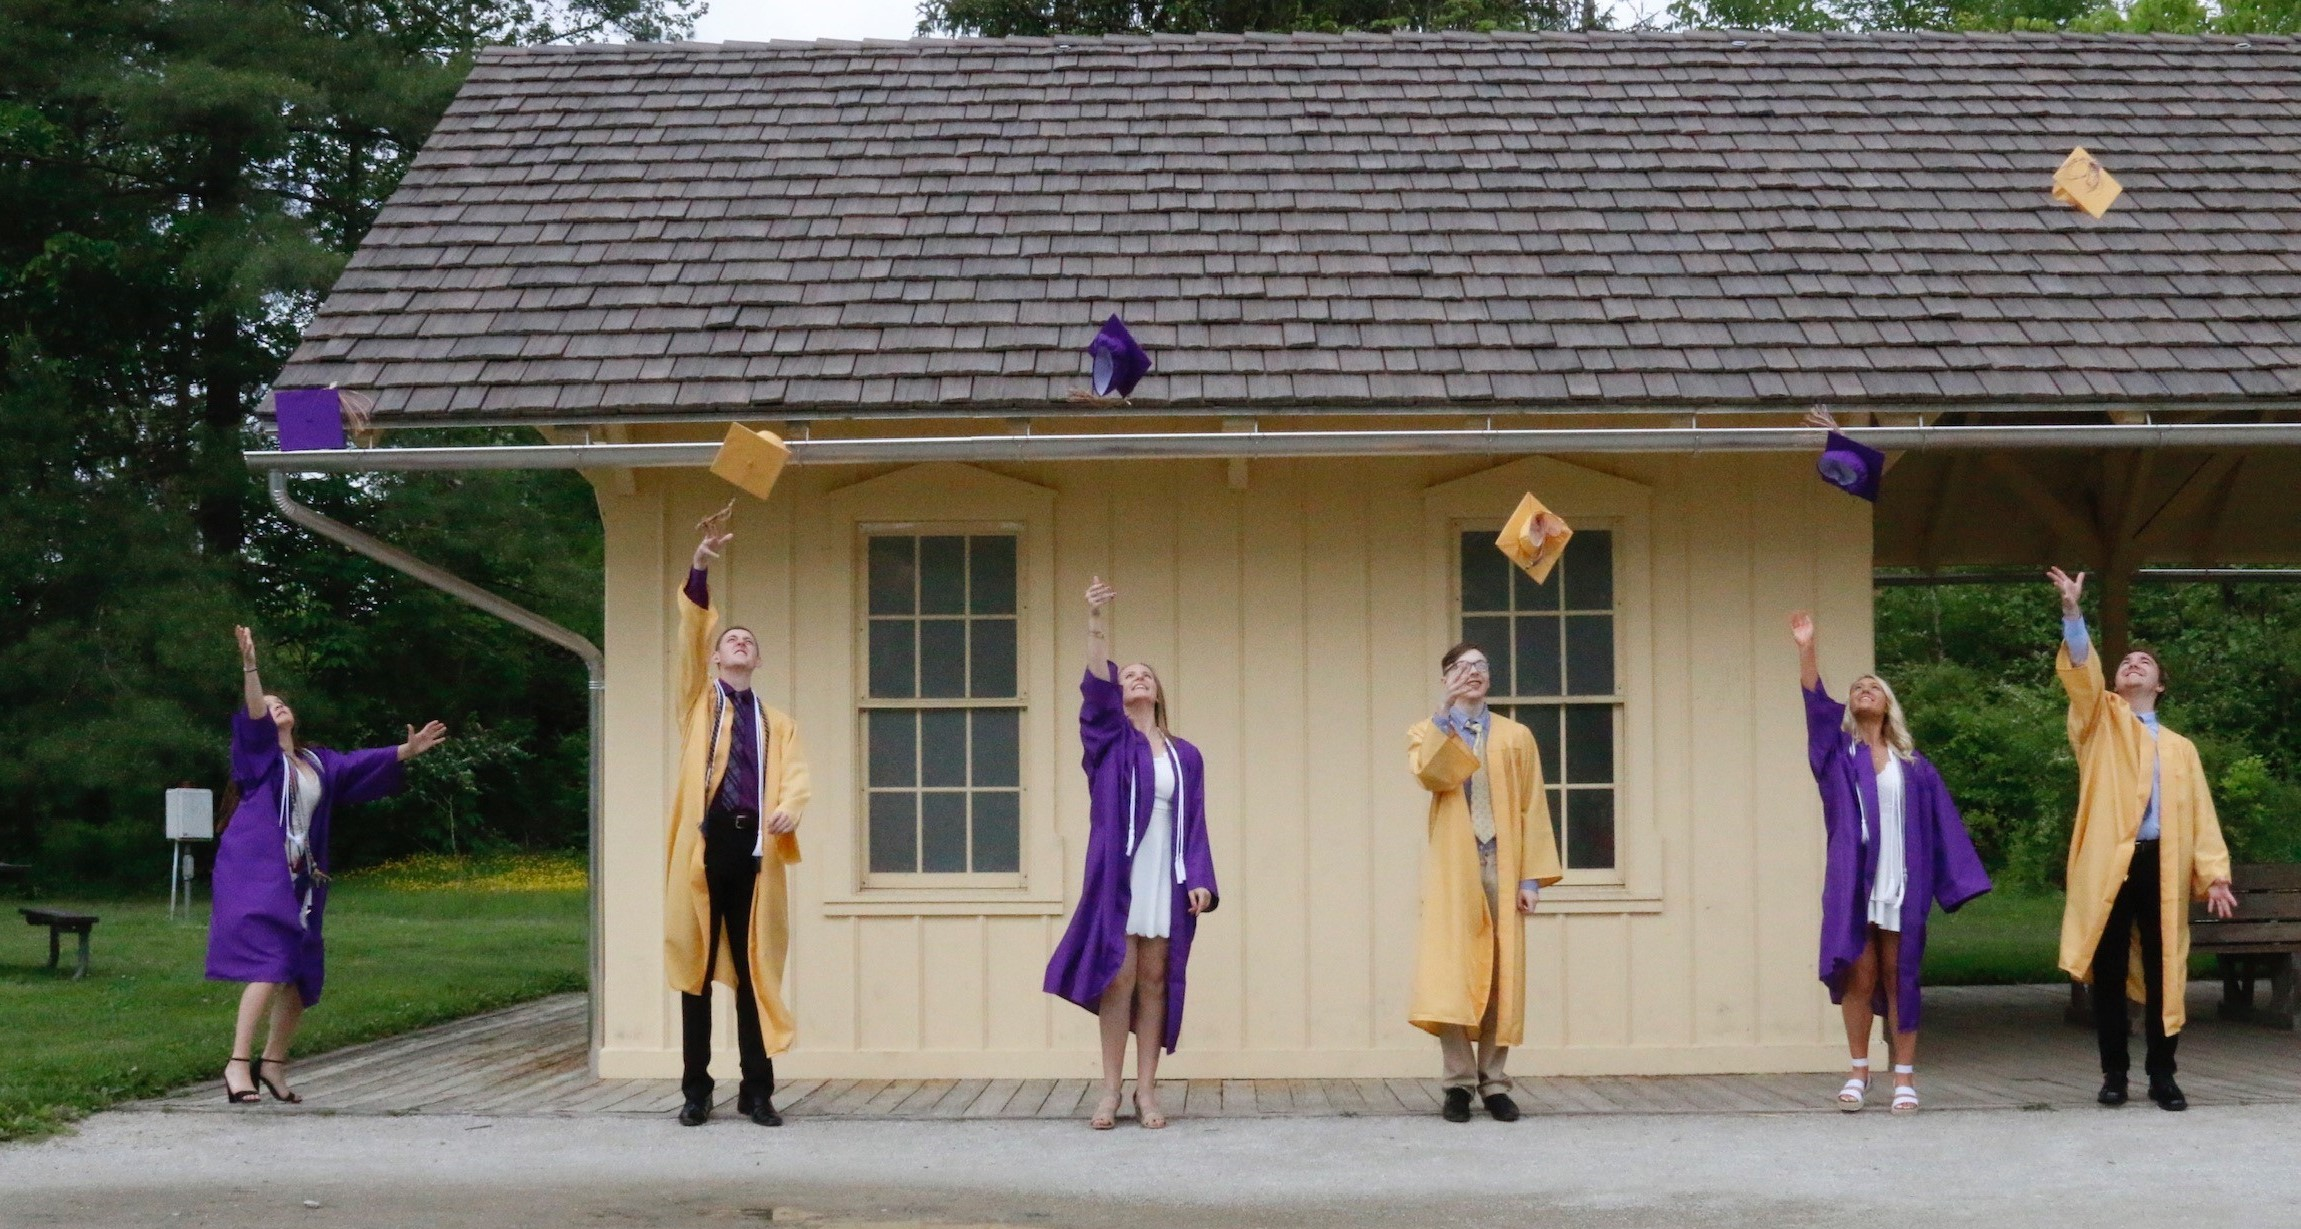 north royalton high school grads throwing caps in air